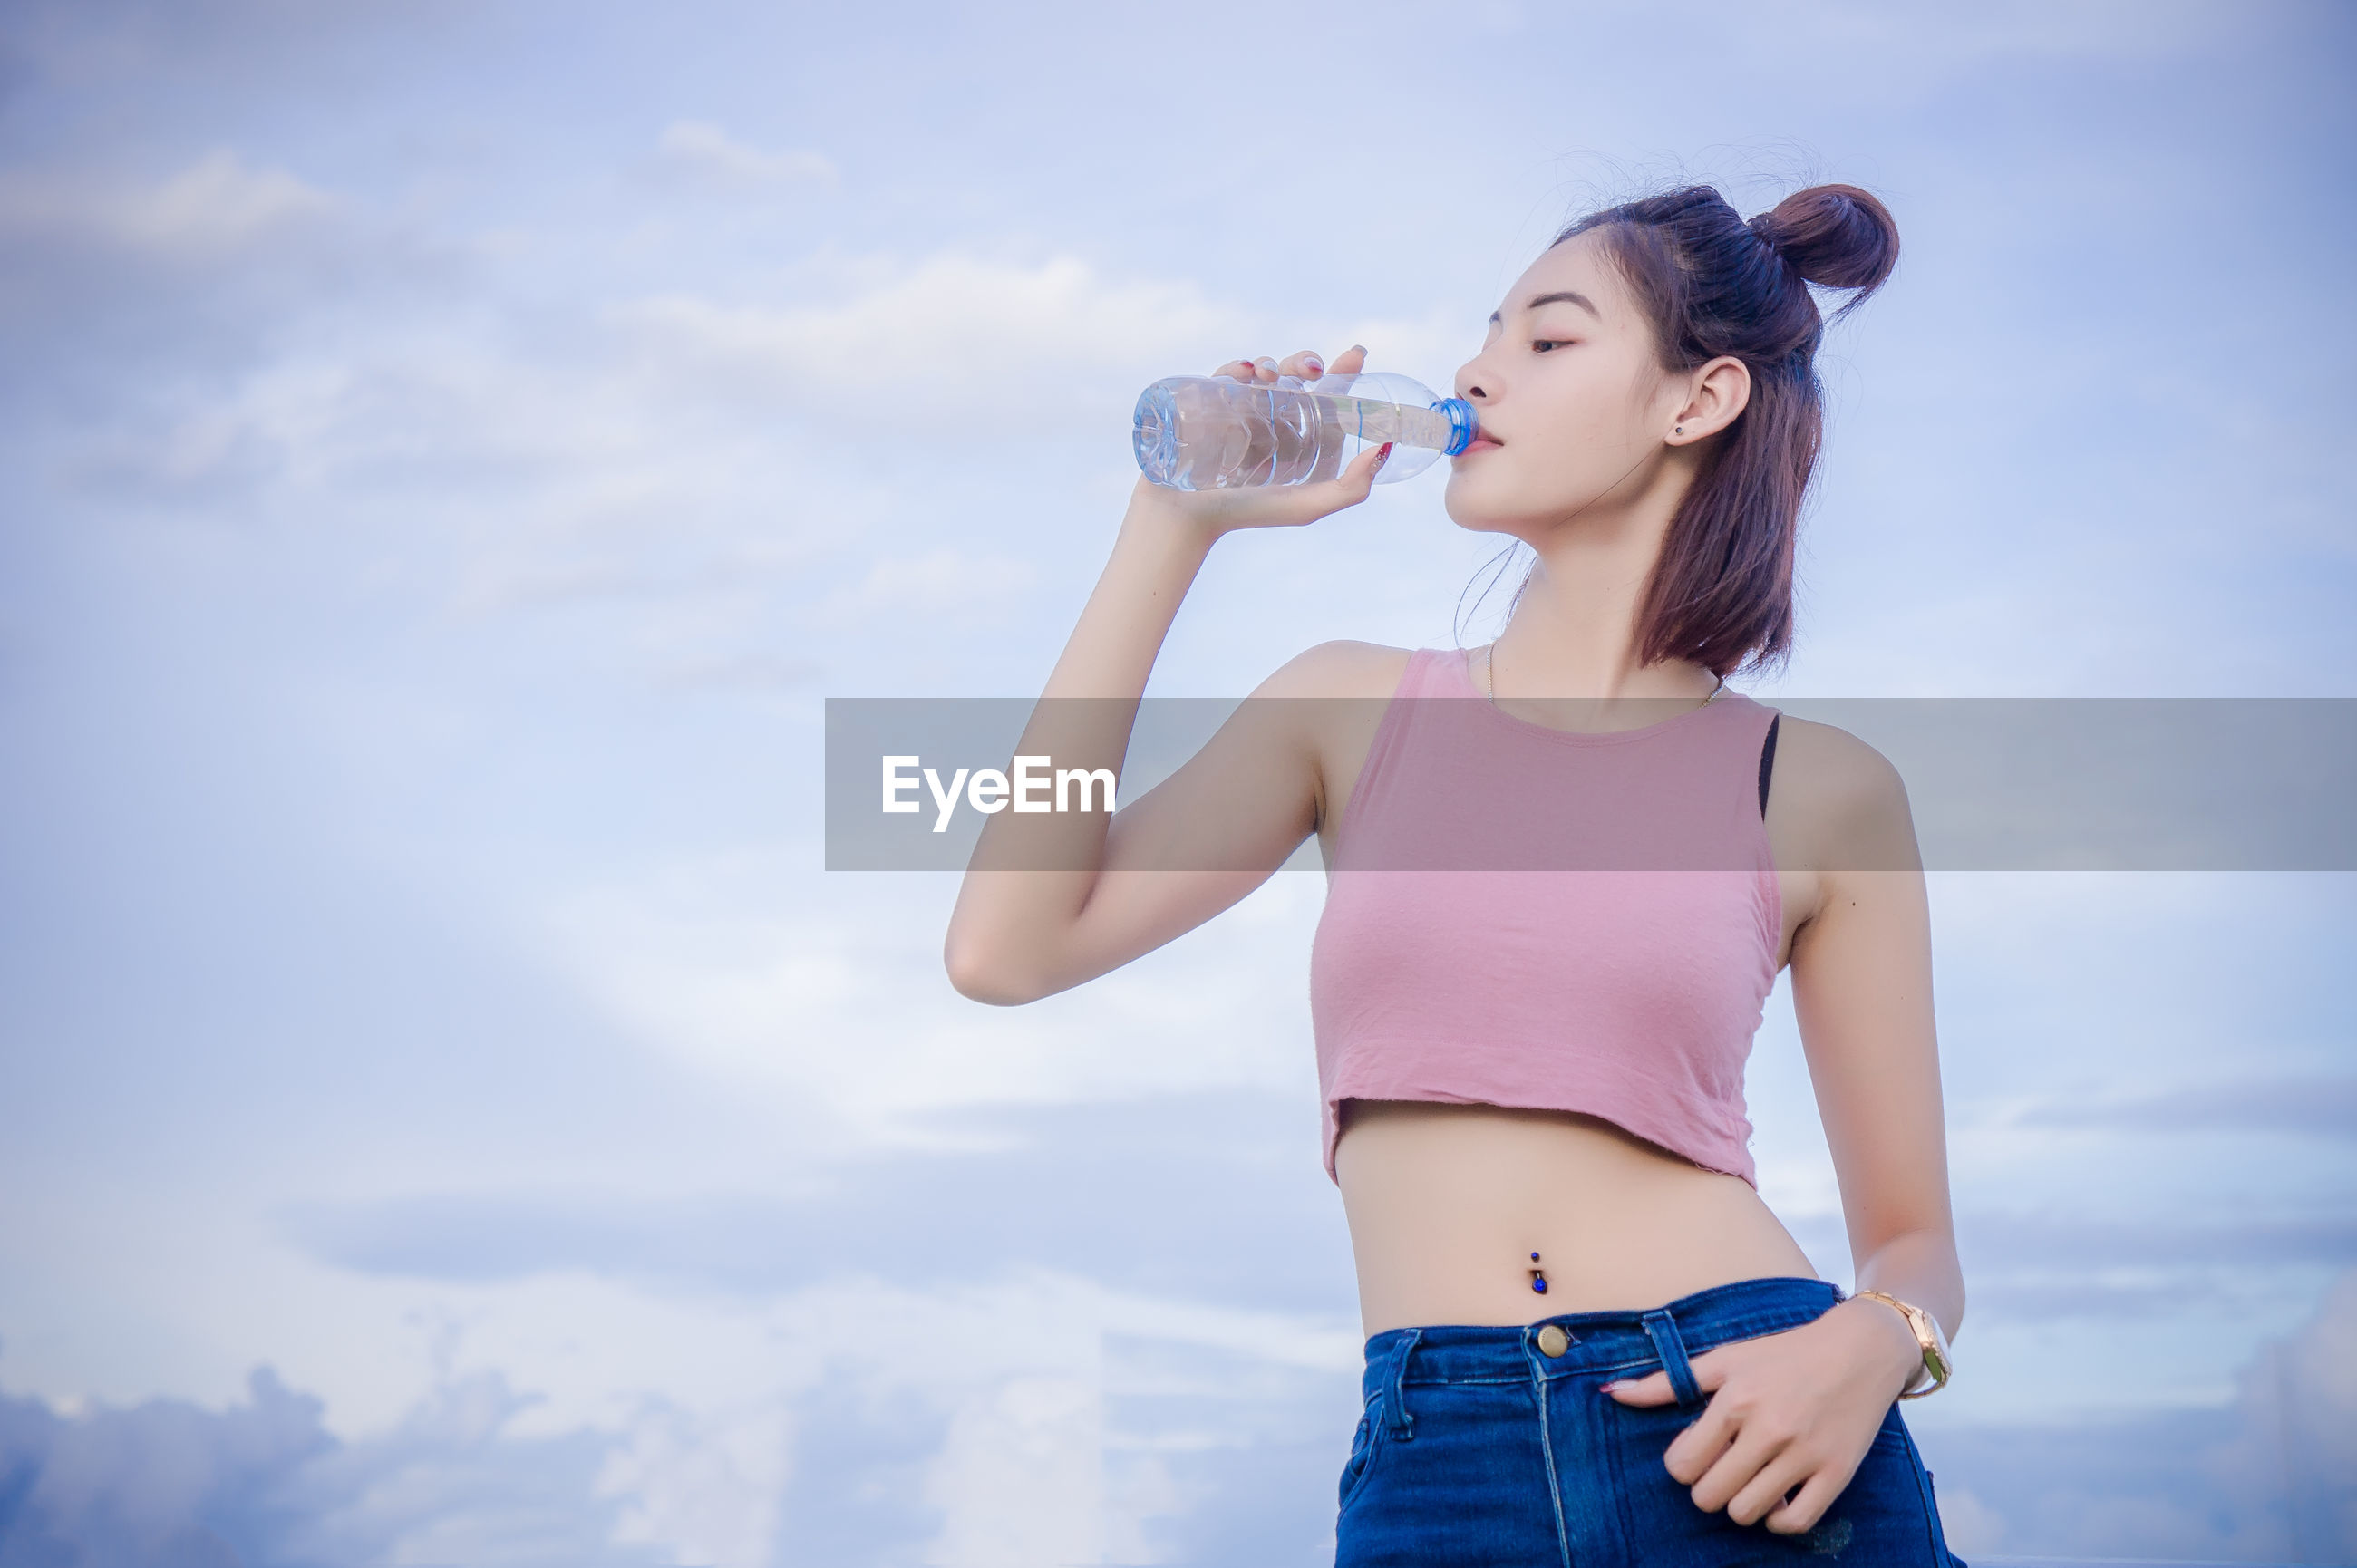 Young woman drinking water from bottle against sky